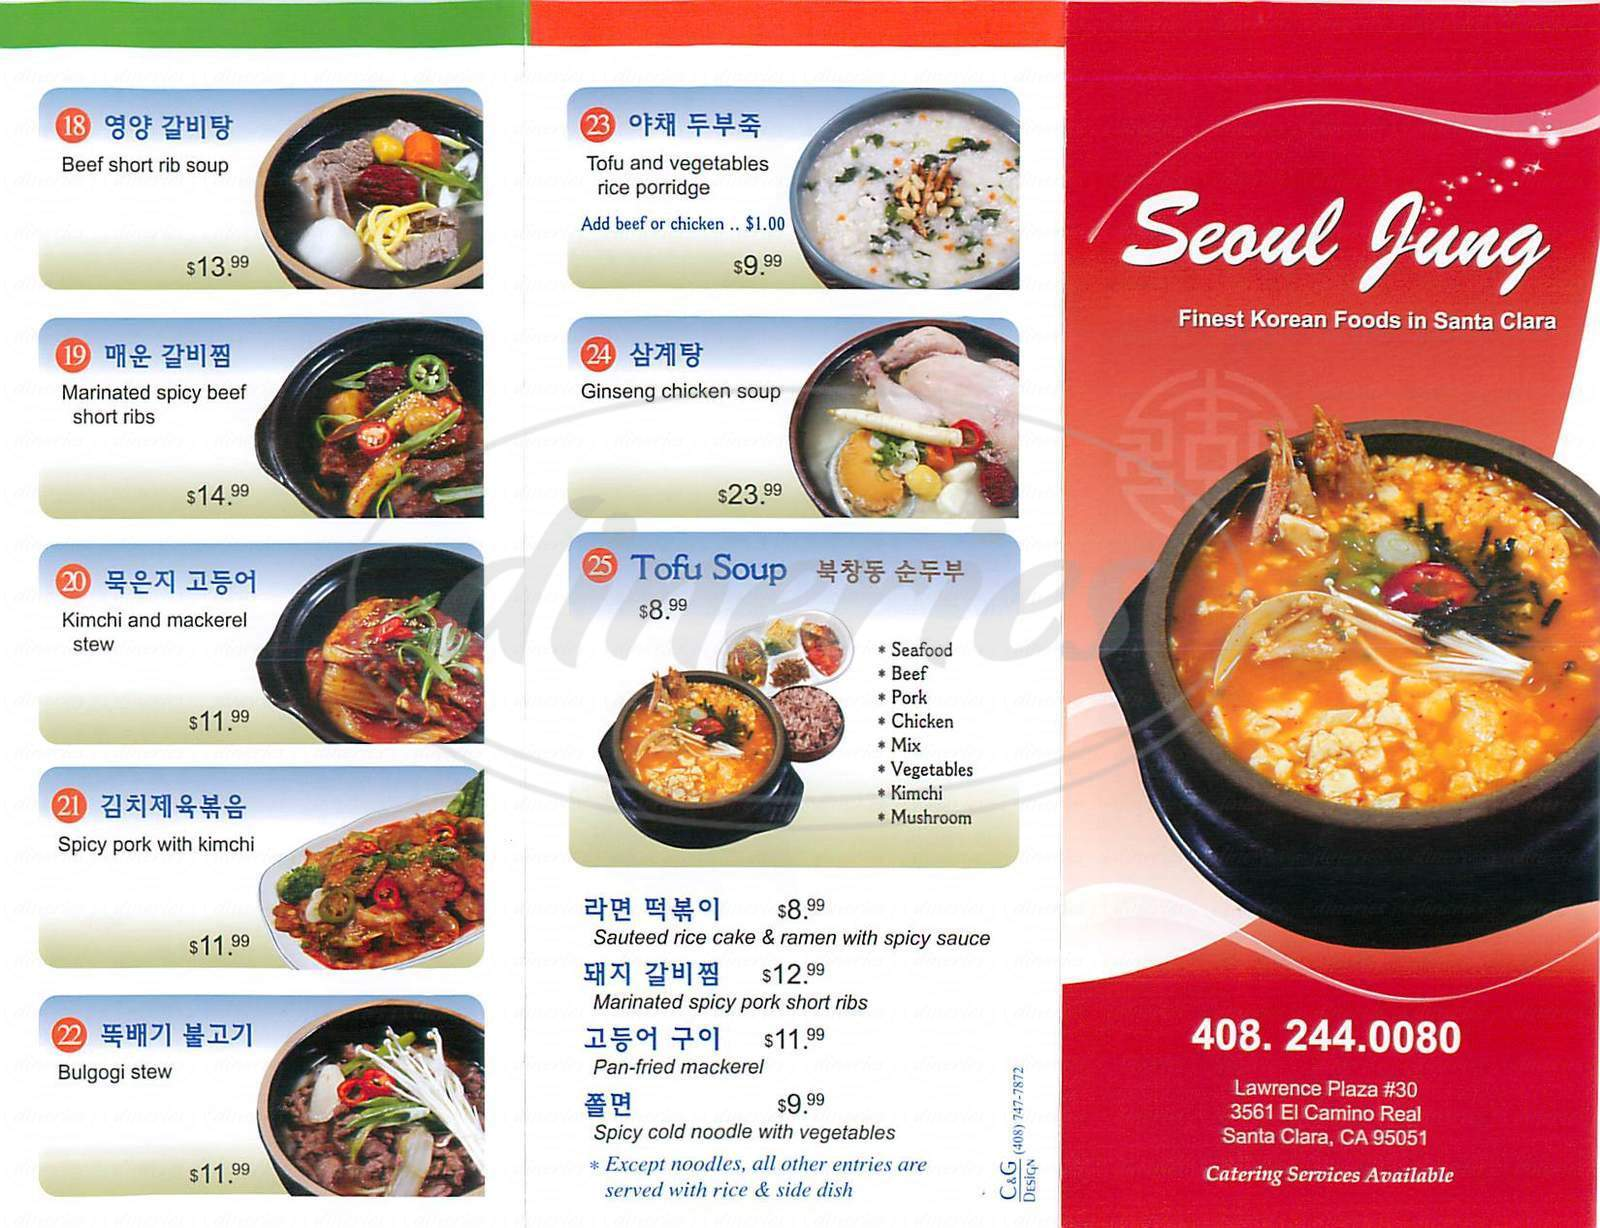 menu for Seoul Jung